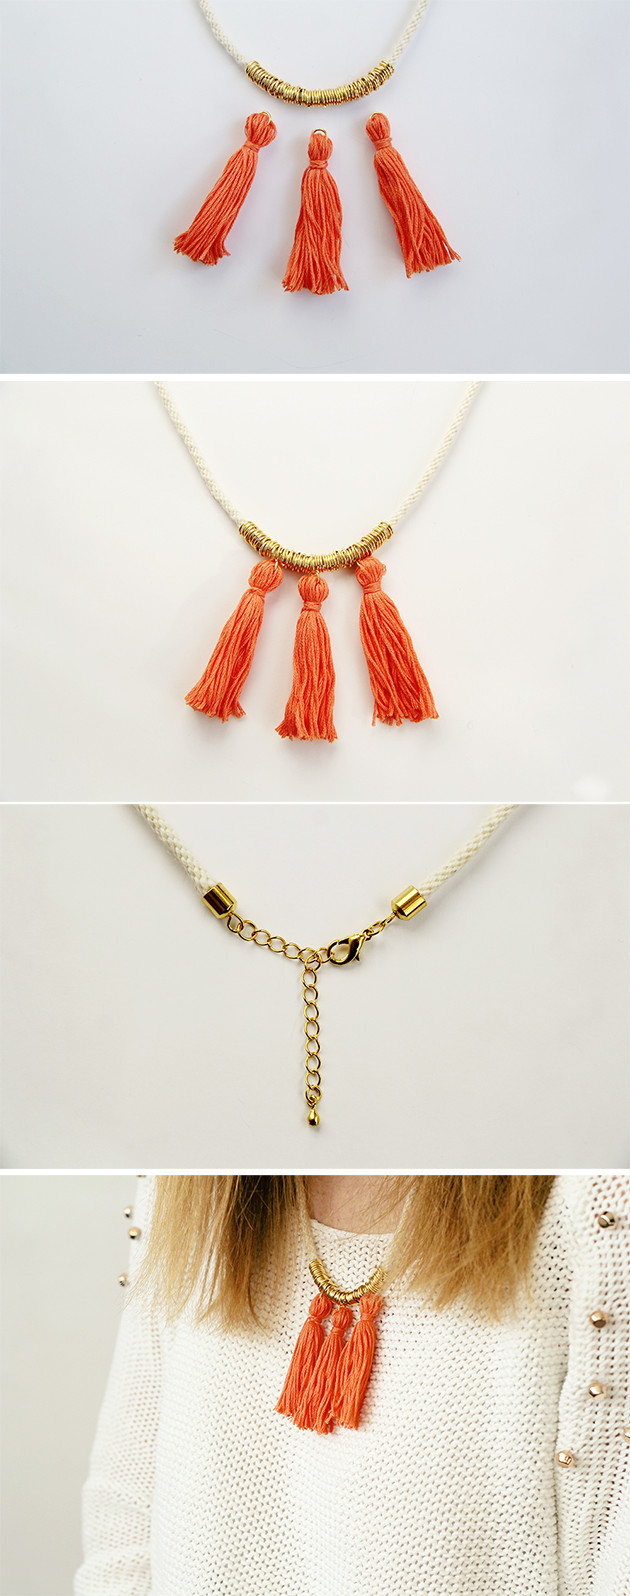 Best ideas about DIY Tassel Necklaces . Save or Pin DIY Ring and Tassel Necklace Now.